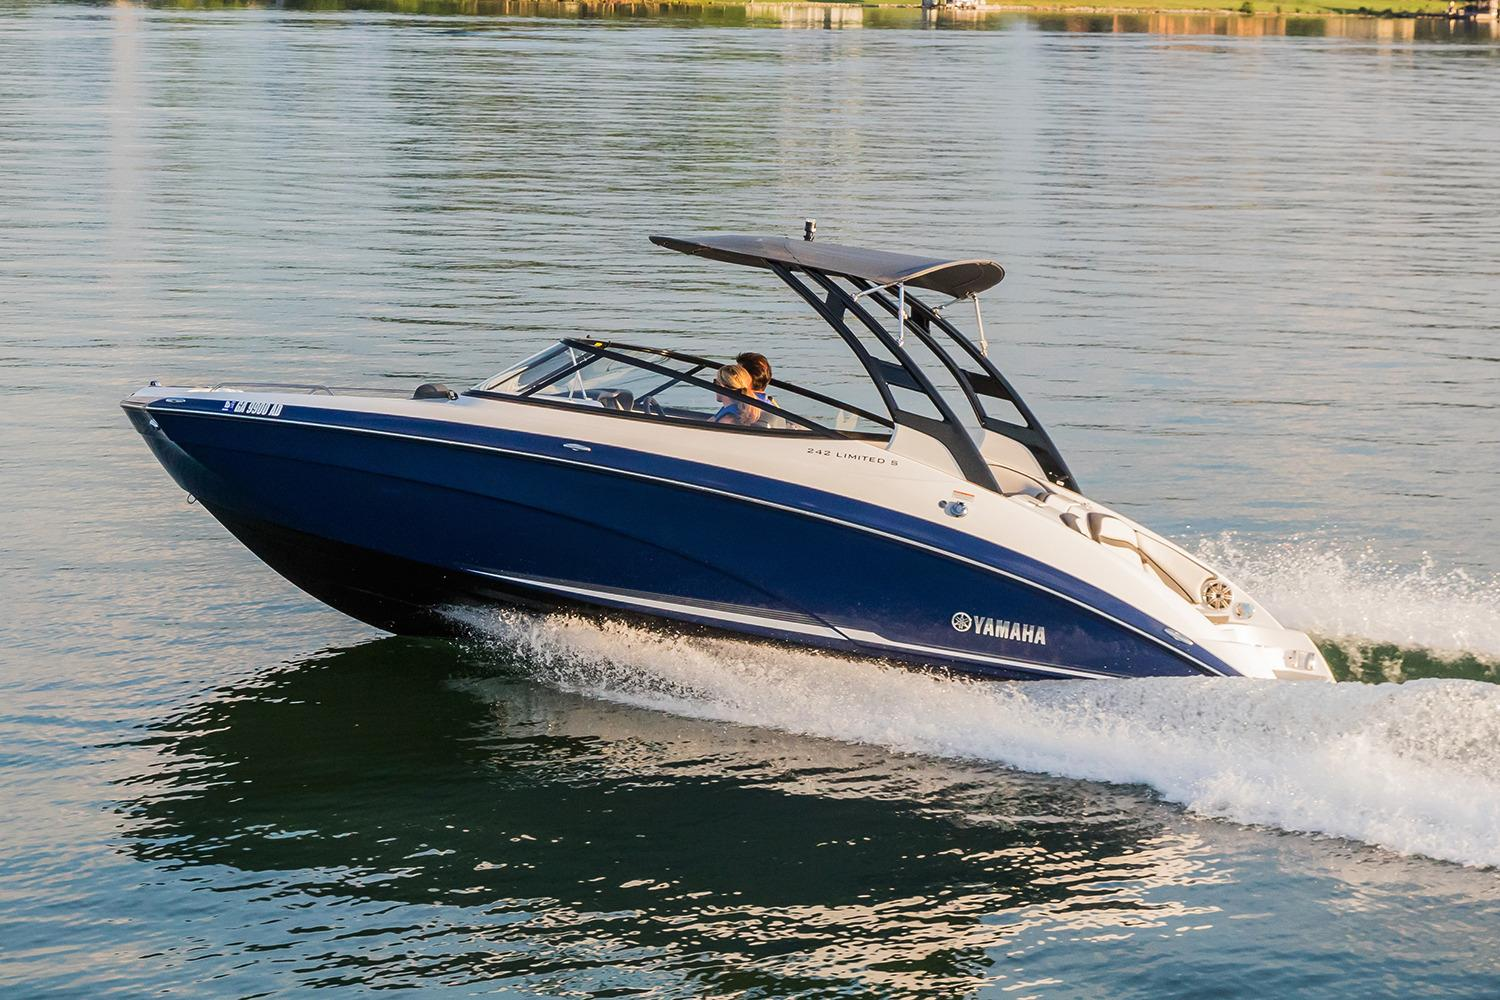 2017 Yamaha 242 Limited S in South Windsor, Connecticut